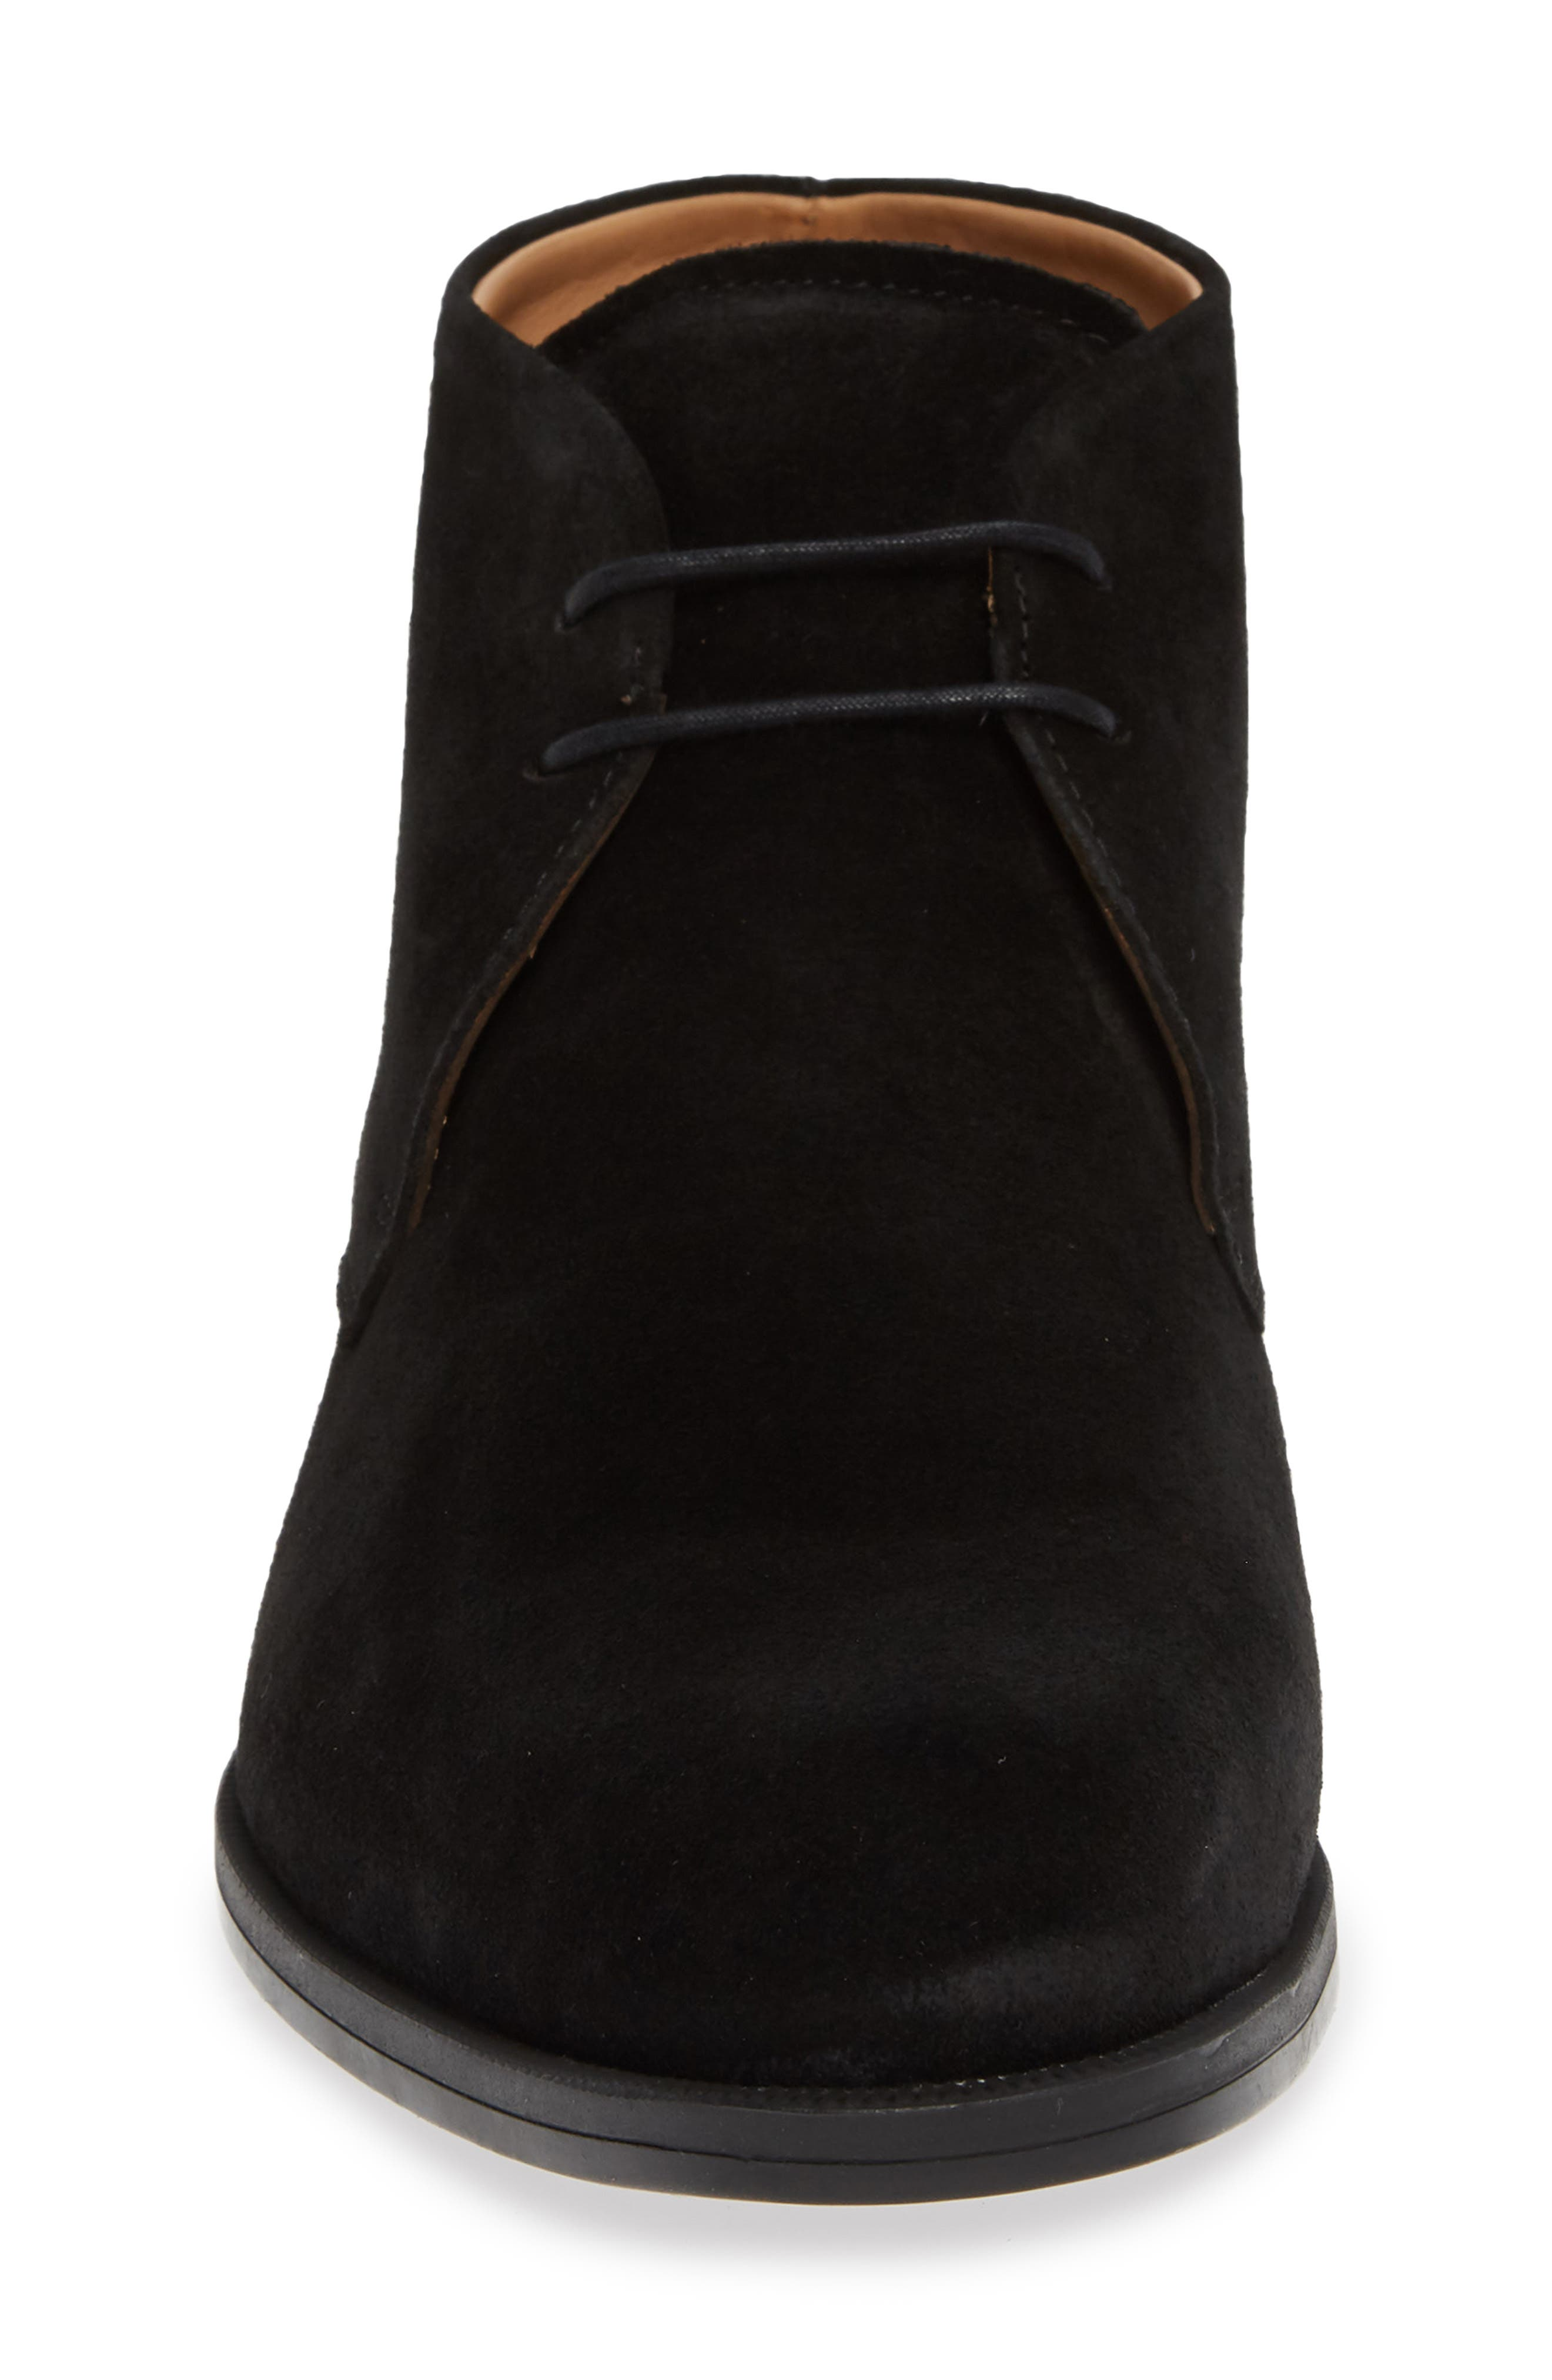 VINCE CAMUTO, Iden Chukka Boot, Alternate thumbnail 4, color, BLACK SUEDE